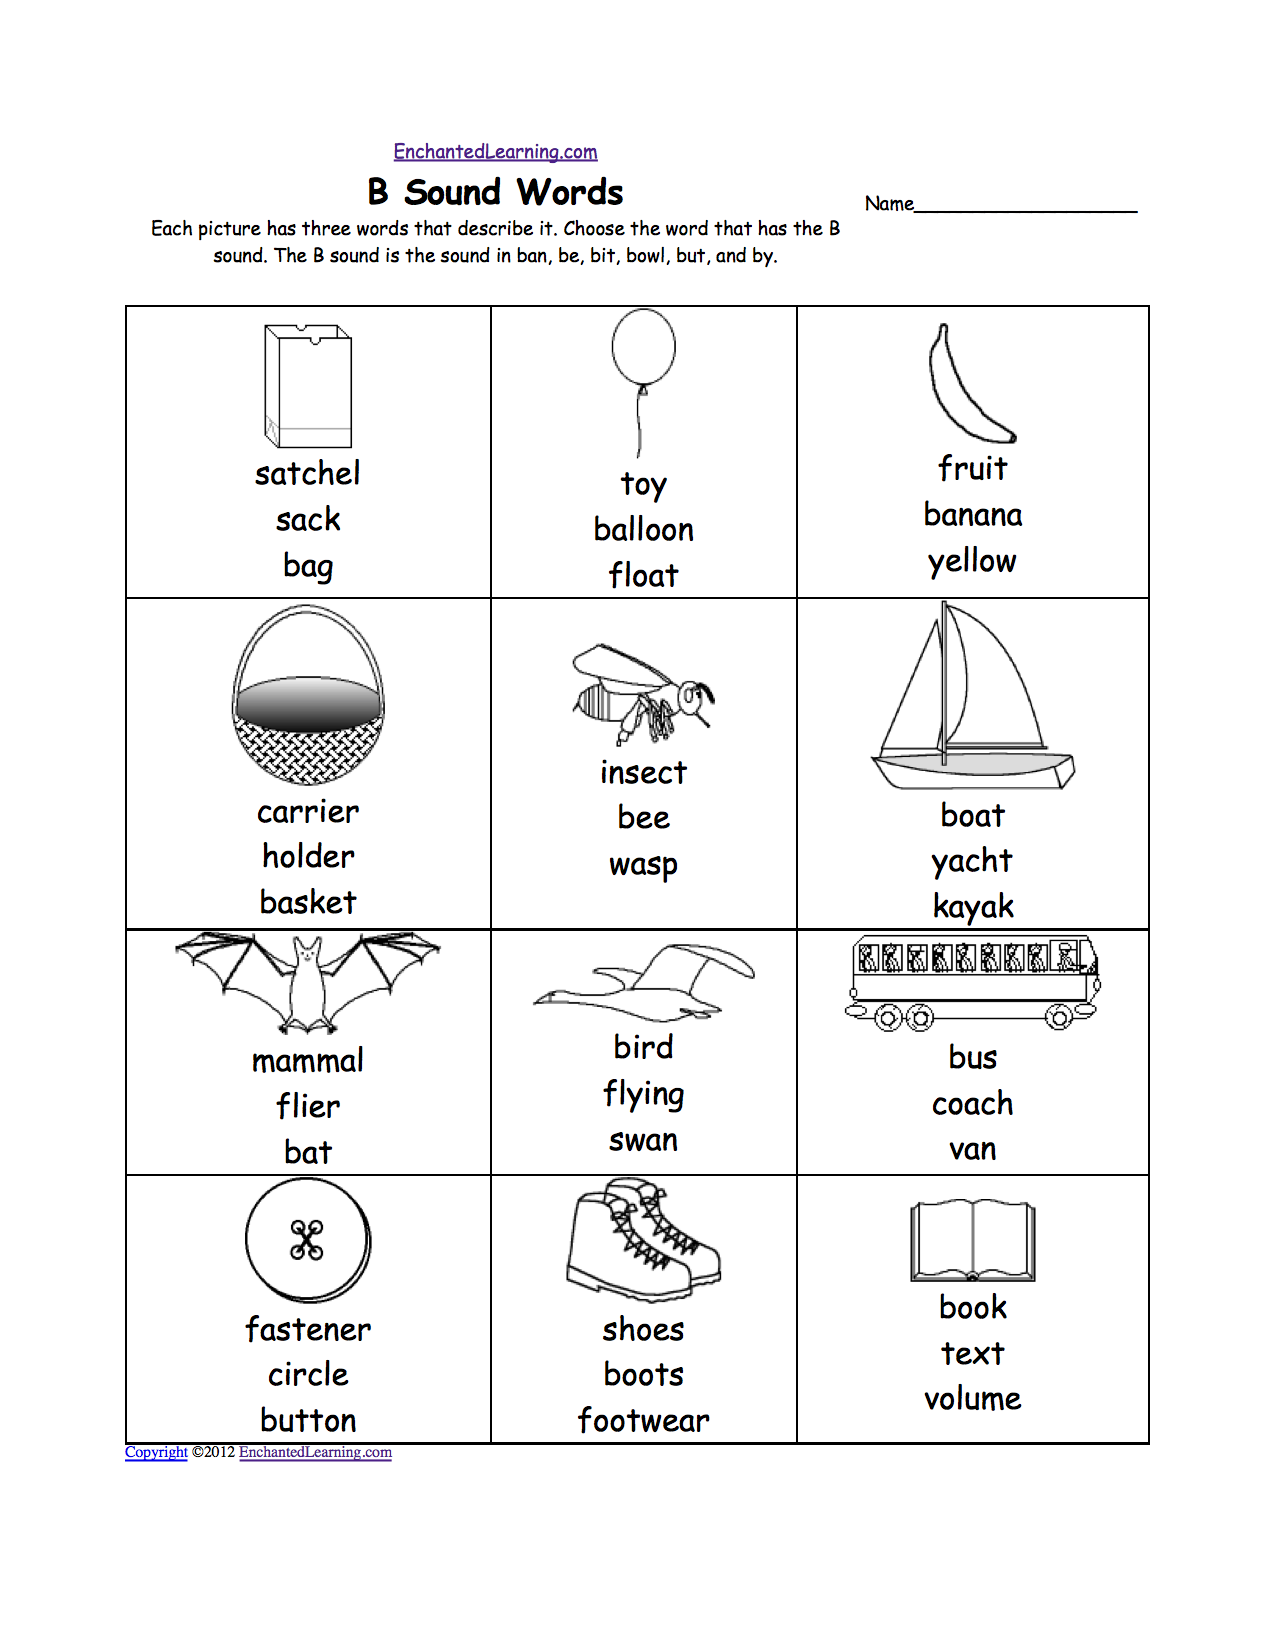 Weirdmailus  Ravishing Phonics Worksheets Multiple Choice Worksheets To Print  With Fair Quotbquot Sound Phonics Worksheet Multiple Choice Each Picture Has Three Words That Describe It Choose The Word That Has A Quotbquot Sound The Quotbquot Sound Is The Sound  With Astonishing Number Lines To  Worksheet Also A And An Worksheets For Kids In Addition English Worksheets For Class  And Pythagorean Theorem Investigation Worksheet As Well As Worksheet Of English For Class  Additionally Distance Speed Time Worksheets From Enchantedlearningcom With Weirdmailus  Fair Phonics Worksheets Multiple Choice Worksheets To Print  With Astonishing Quotbquot Sound Phonics Worksheet Multiple Choice Each Picture Has Three Words That Describe It Choose The Word That Has A Quotbquot Sound The Quotbquot Sound Is The Sound  And Ravishing Number Lines To  Worksheet Also A And An Worksheets For Kids In Addition English Worksheets For Class  From Enchantedlearningcom